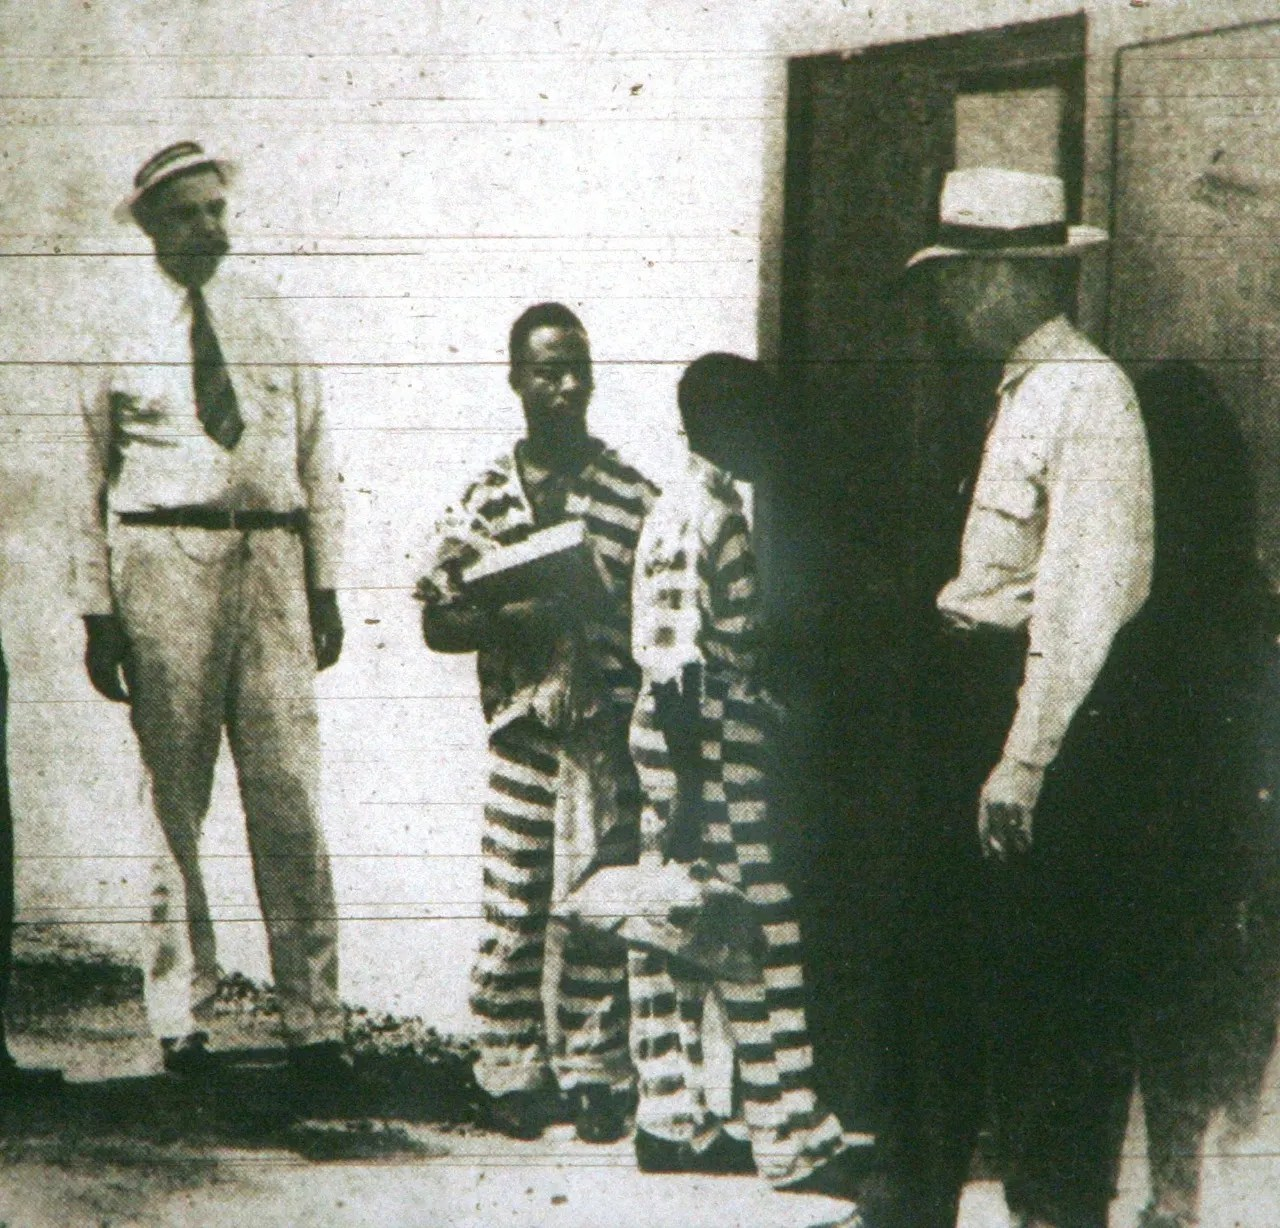 execution by electric chair leather dining chairs with nailheads supporters of 14 year old sc boy executed in 1944 for